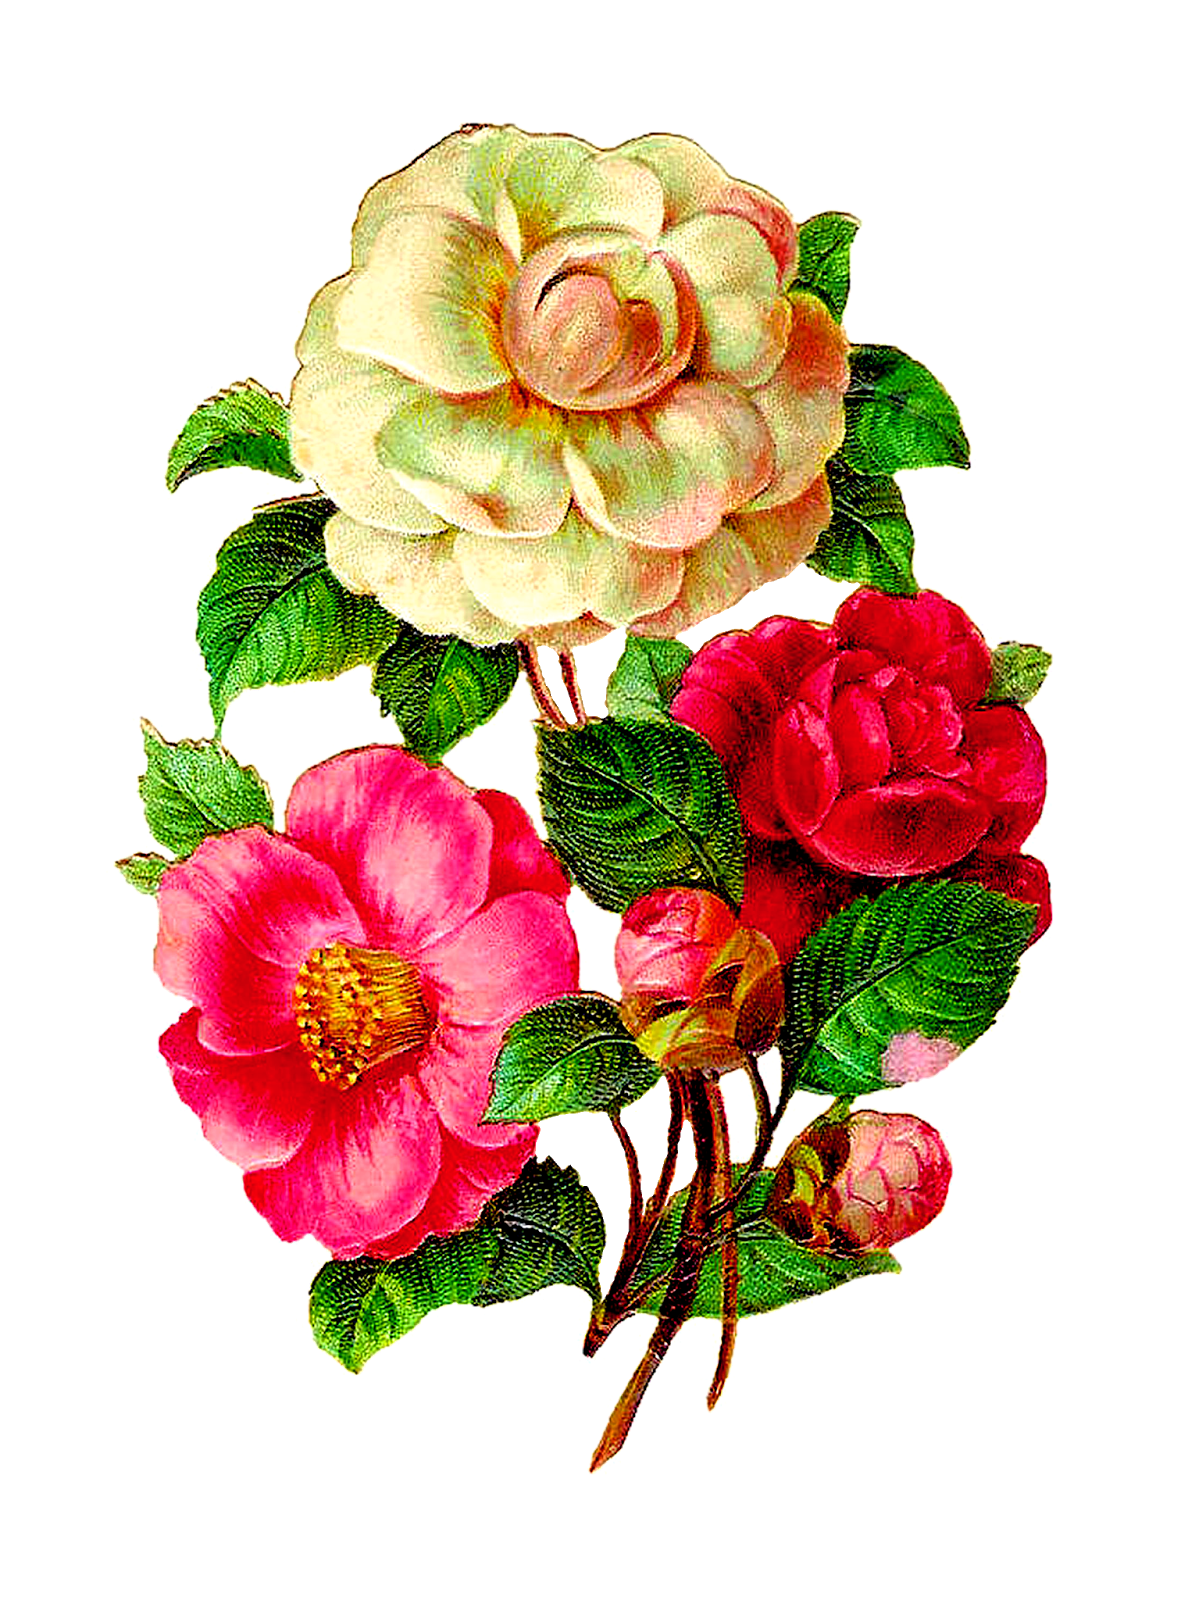 Bouquet vector rose illustration. Afbeeldingsresultaat voor vintage flowers